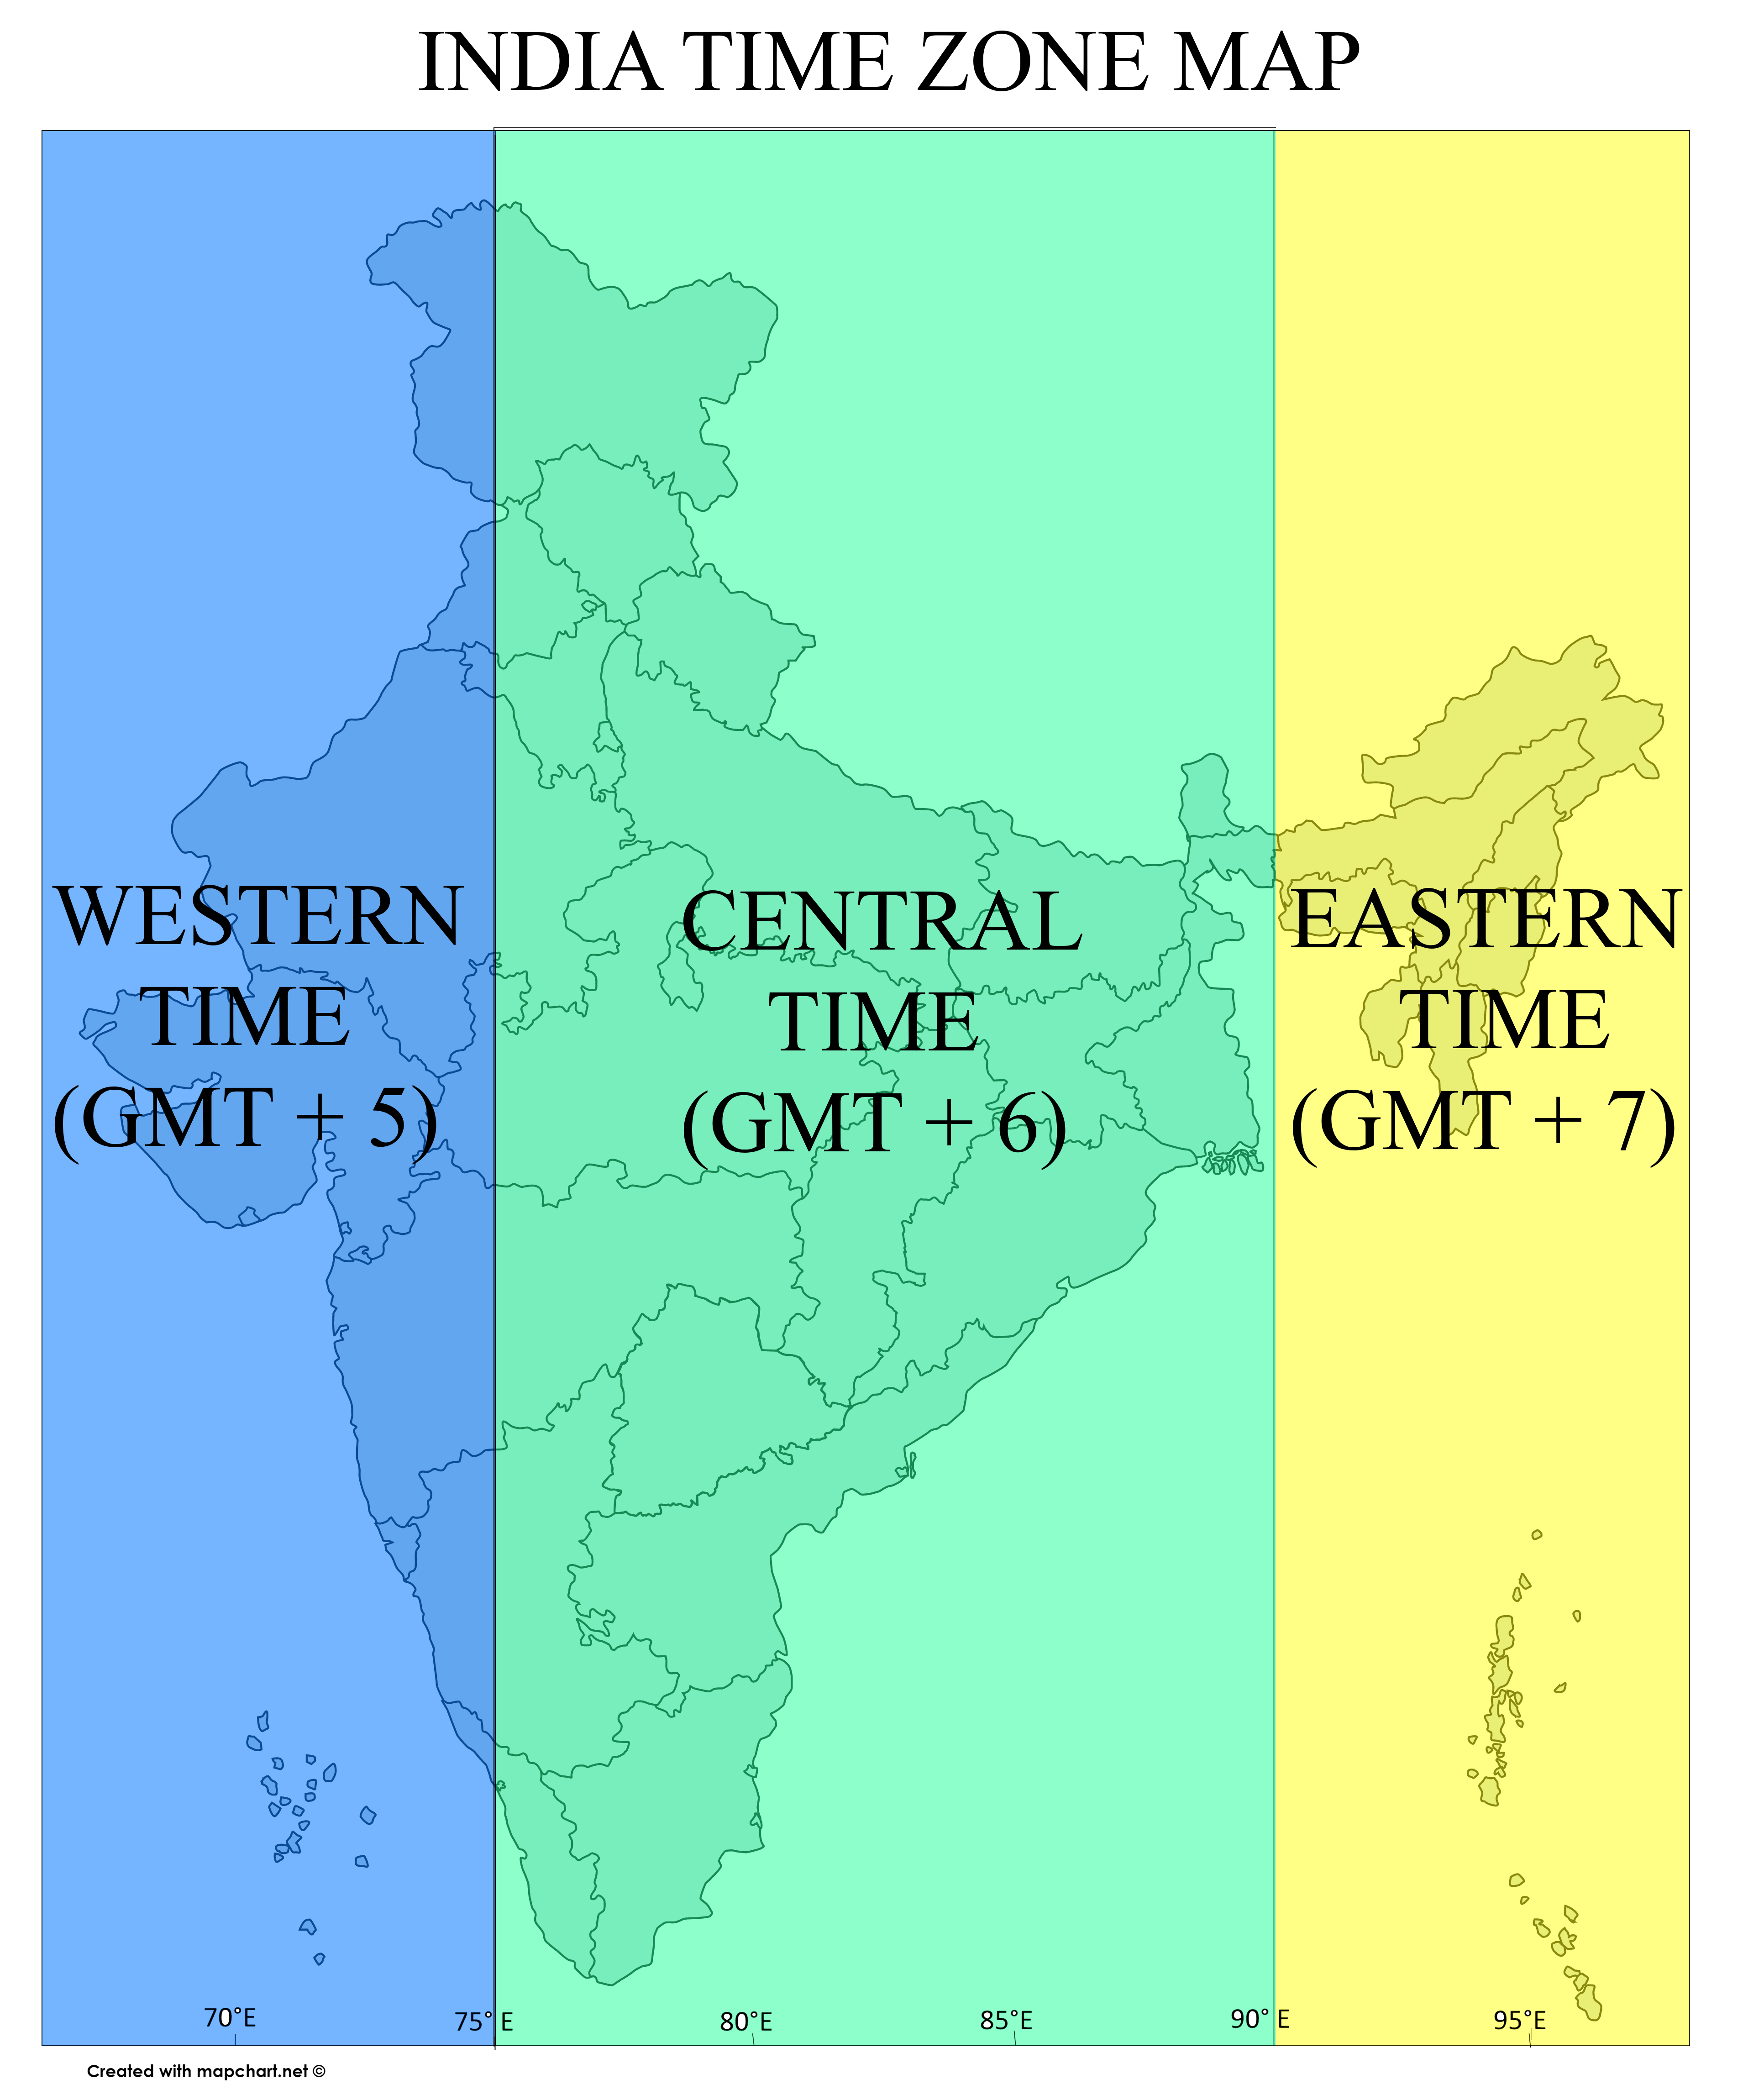 India Time Zone Map The case for having Three Time Zones in India | by Pankaj